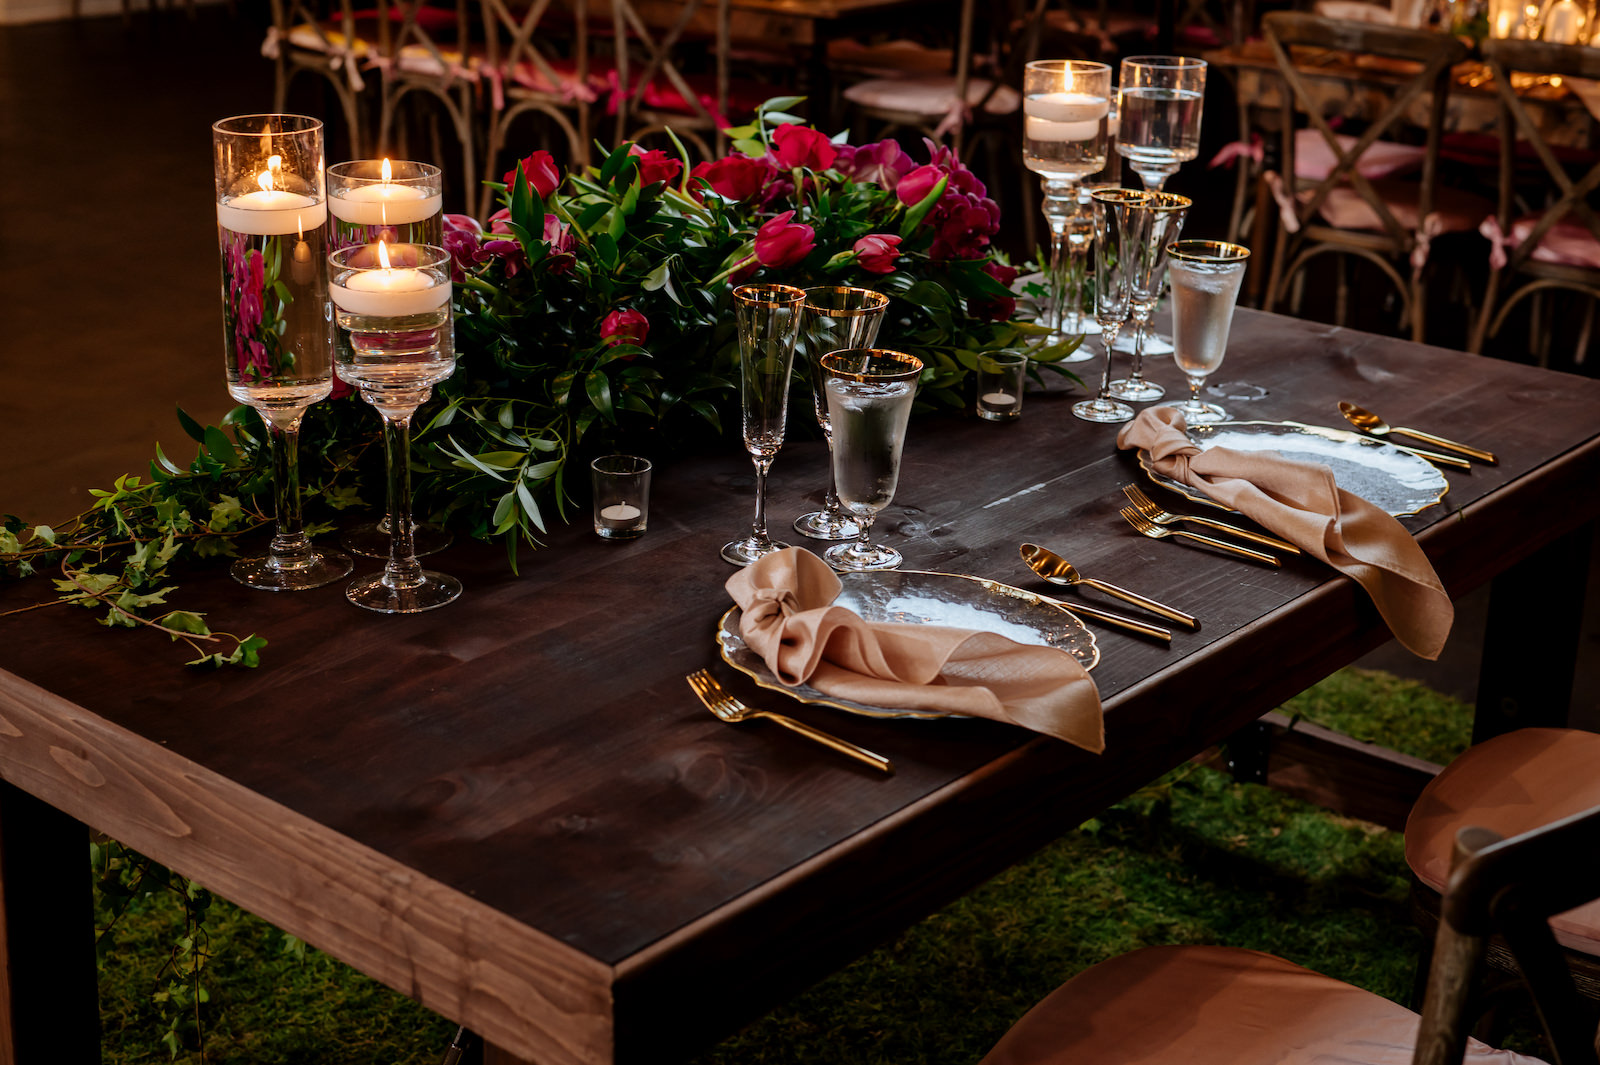 Wood Farm Wedding Reception Sweetheart Table with Greenery and Pink Roses Arrangement and Floating Candles   Wedding Reception Place Setting with Gold Rimmed Glassware and Gold Flatware with Gold Rim Glass Charger Plate by Kate Ryan Event Rentals   Kate Ryan Event Rentals